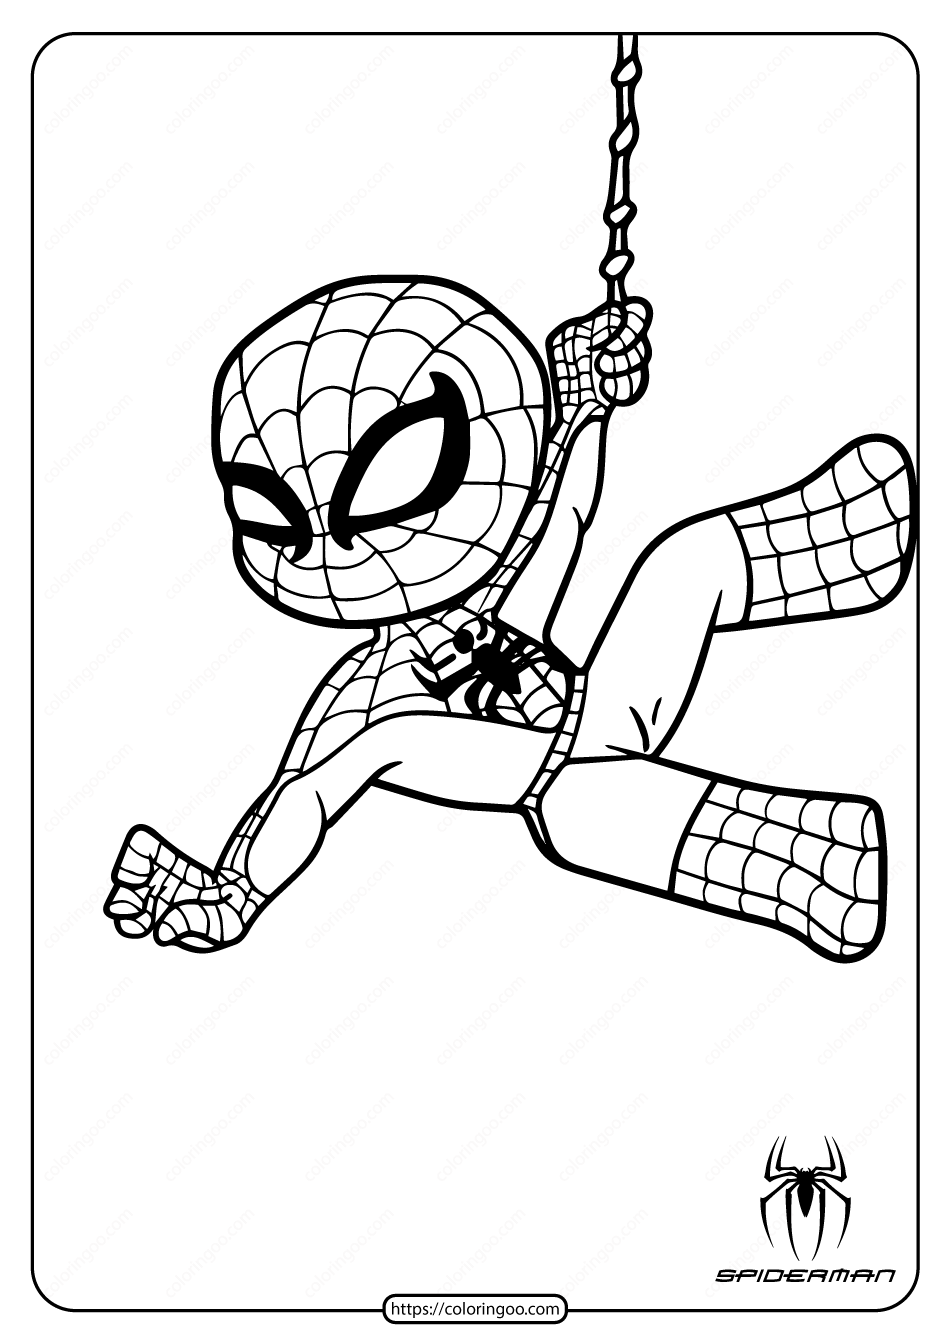 Cute Spiderman Coloring Pages for Kids